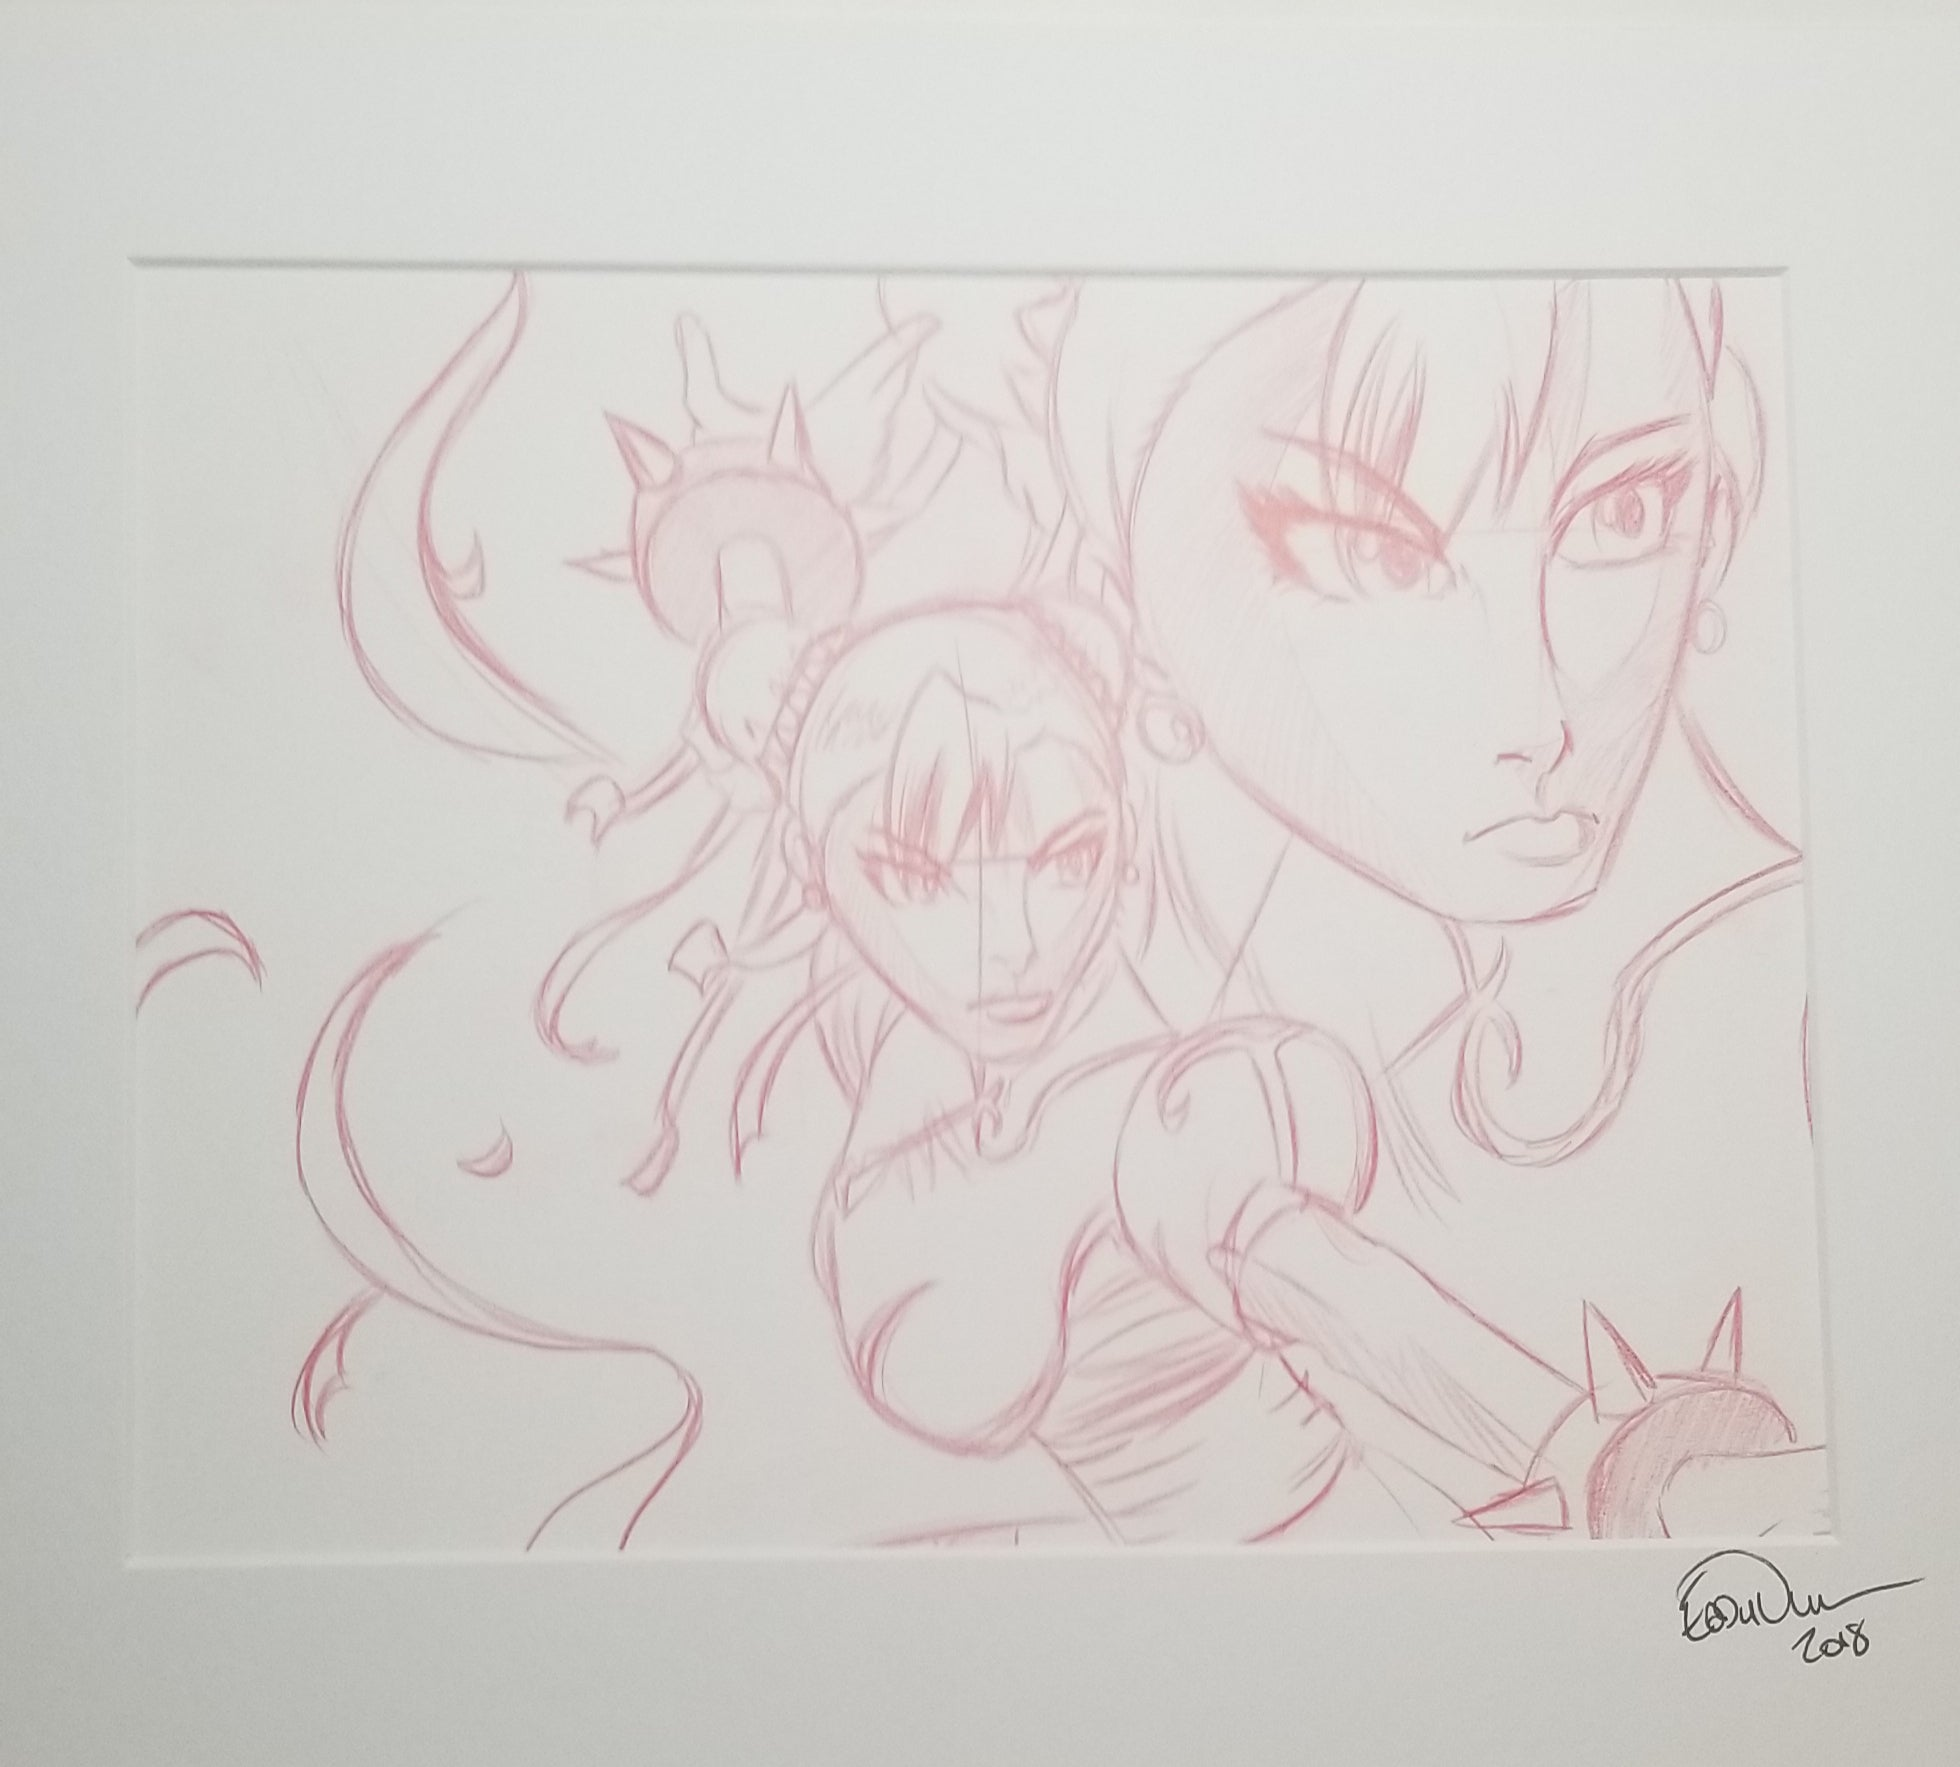 Original Art (Chun-Li Sketch)